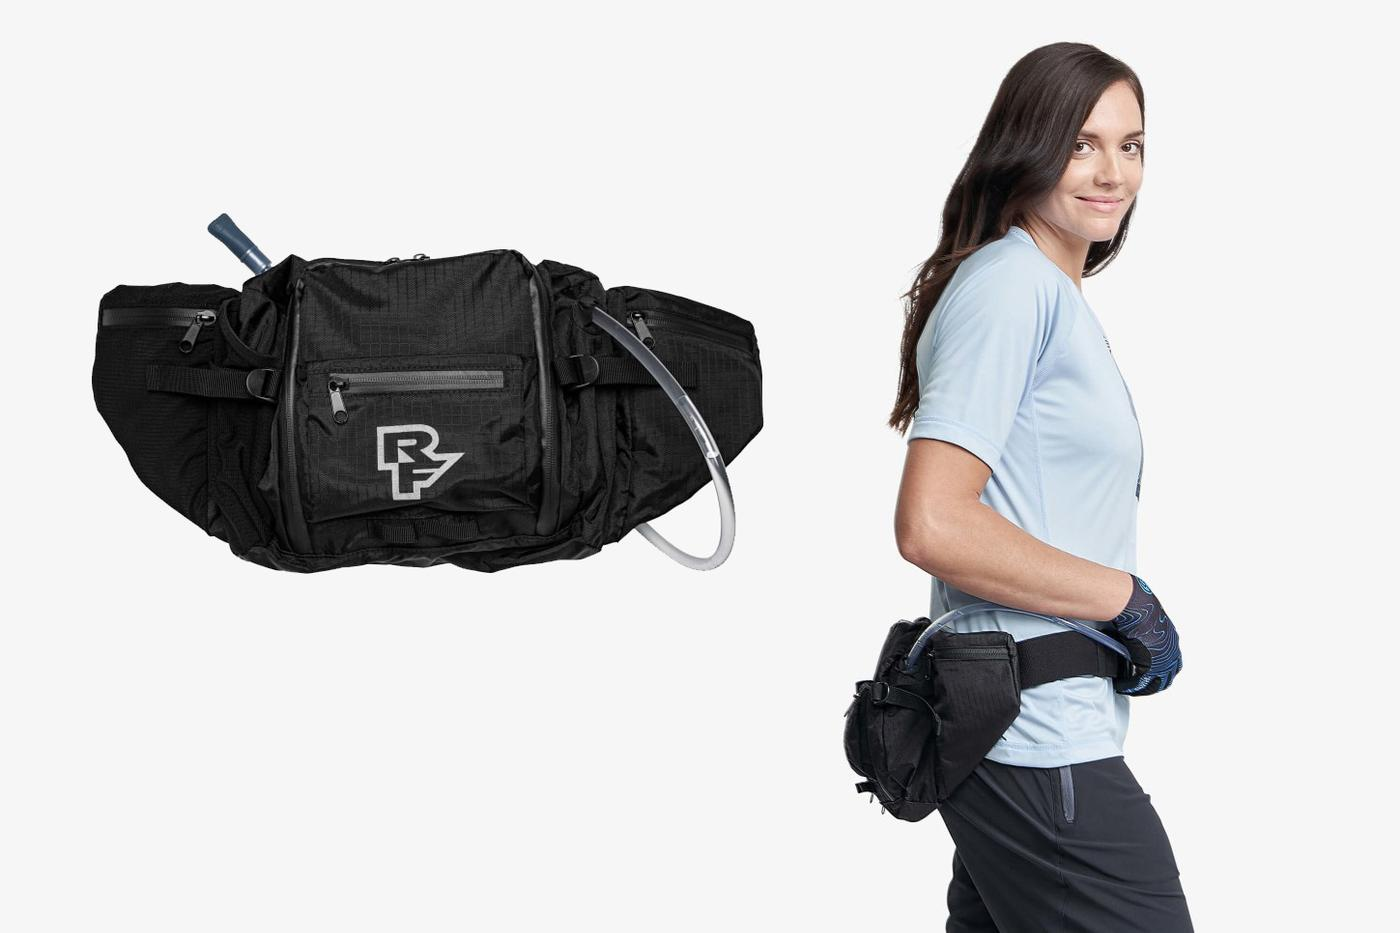 Race Face's 3L Stash Hip Pack Holds a 1.5L Bladder